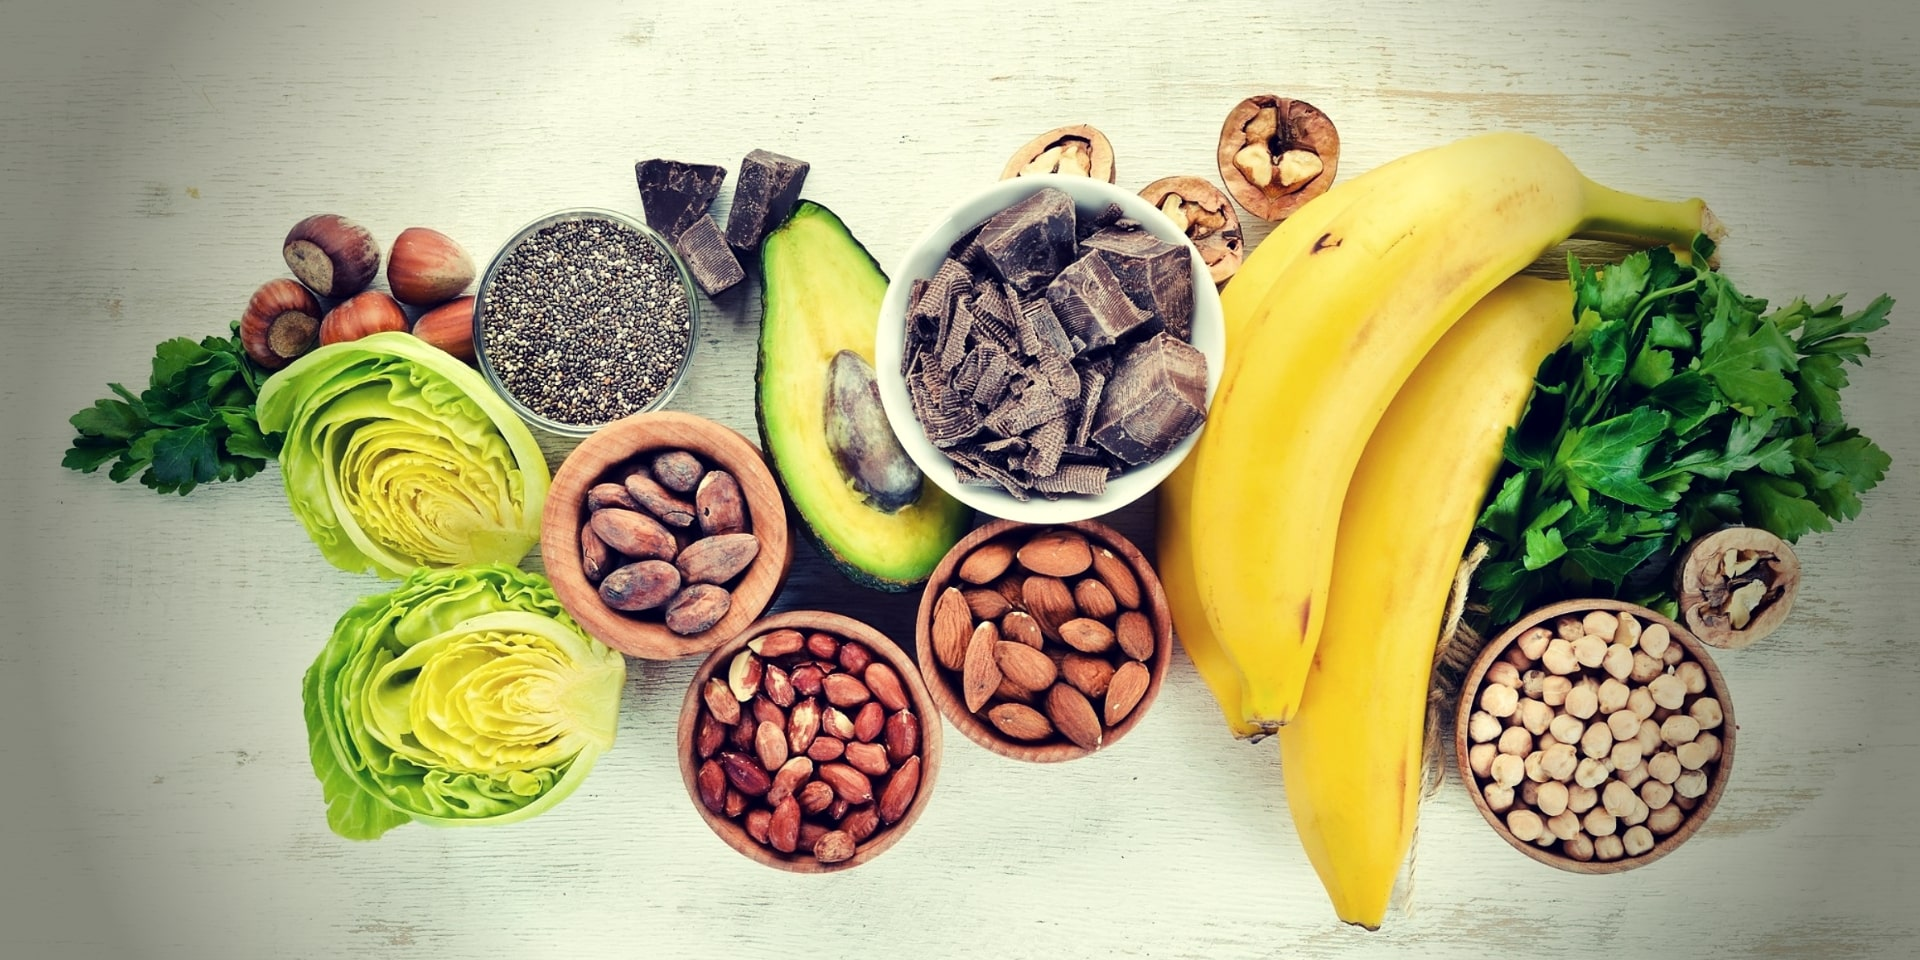 Magnesium and Testosterone foods containing natural magnesium. Chocolate, banana, cocoa, nuts, avocados, broccoli, almonds